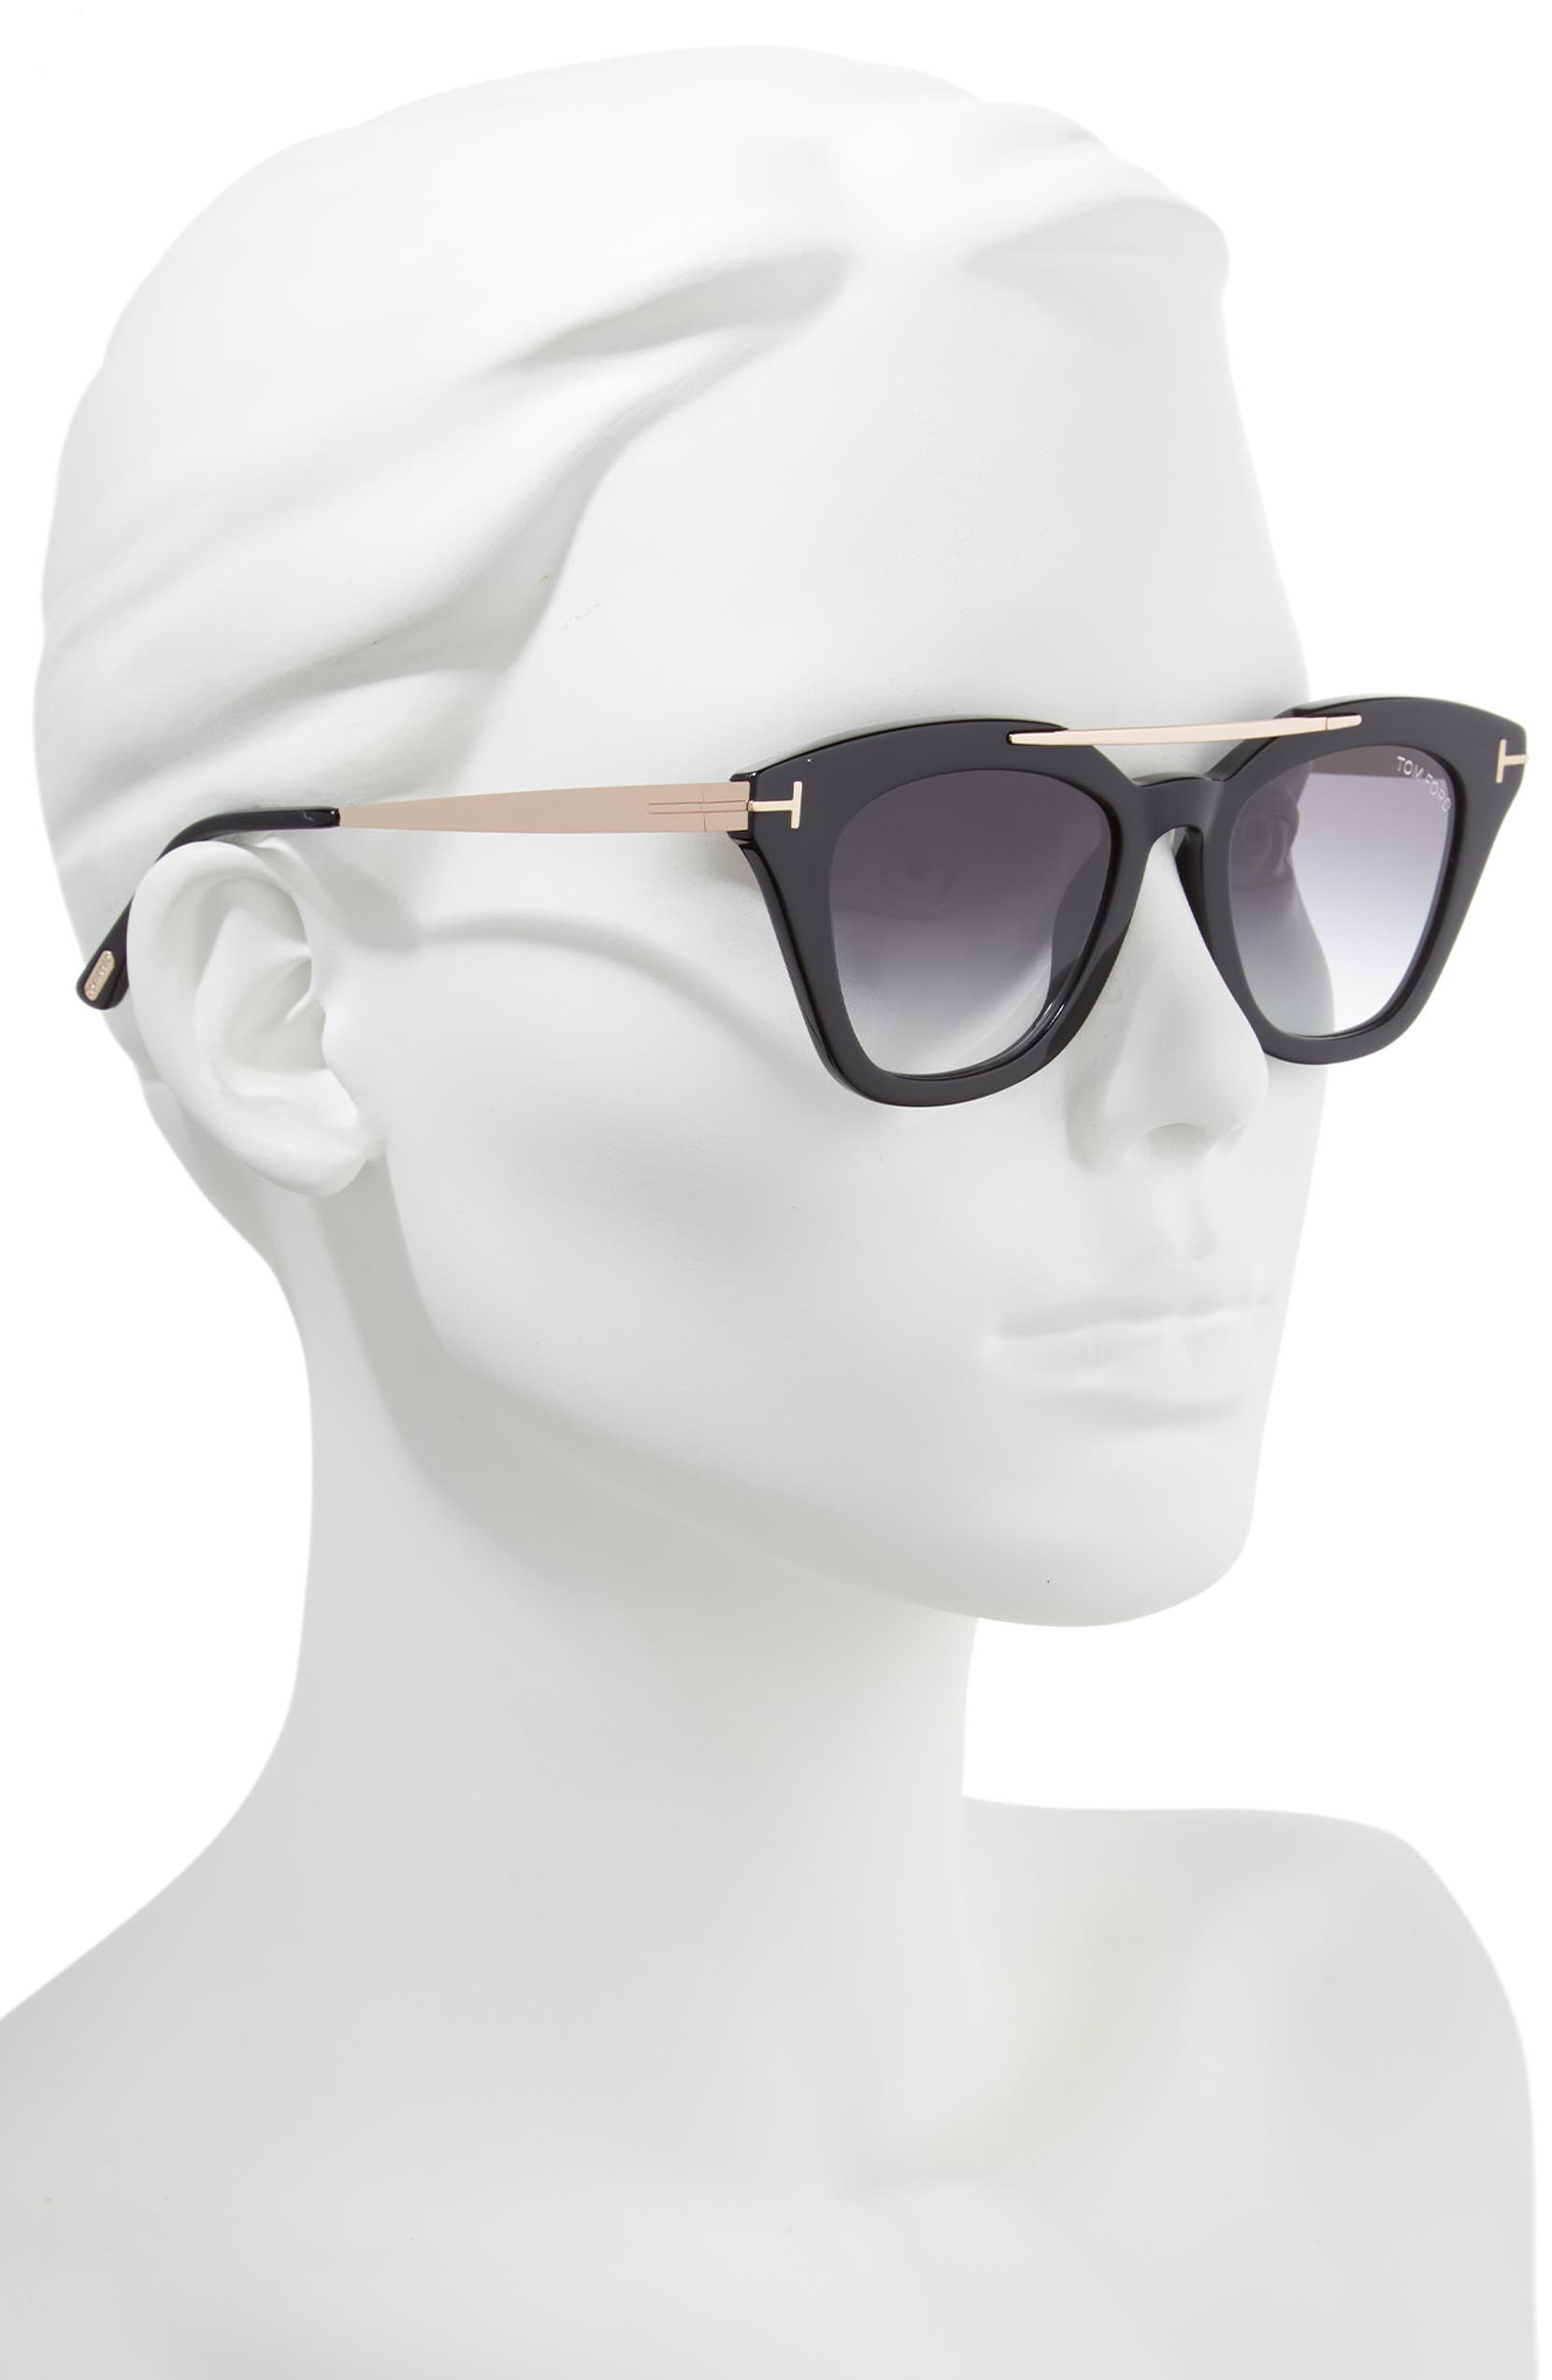 1213a19e10 Tom Ford Anna 49mm Gradient Sunglasses